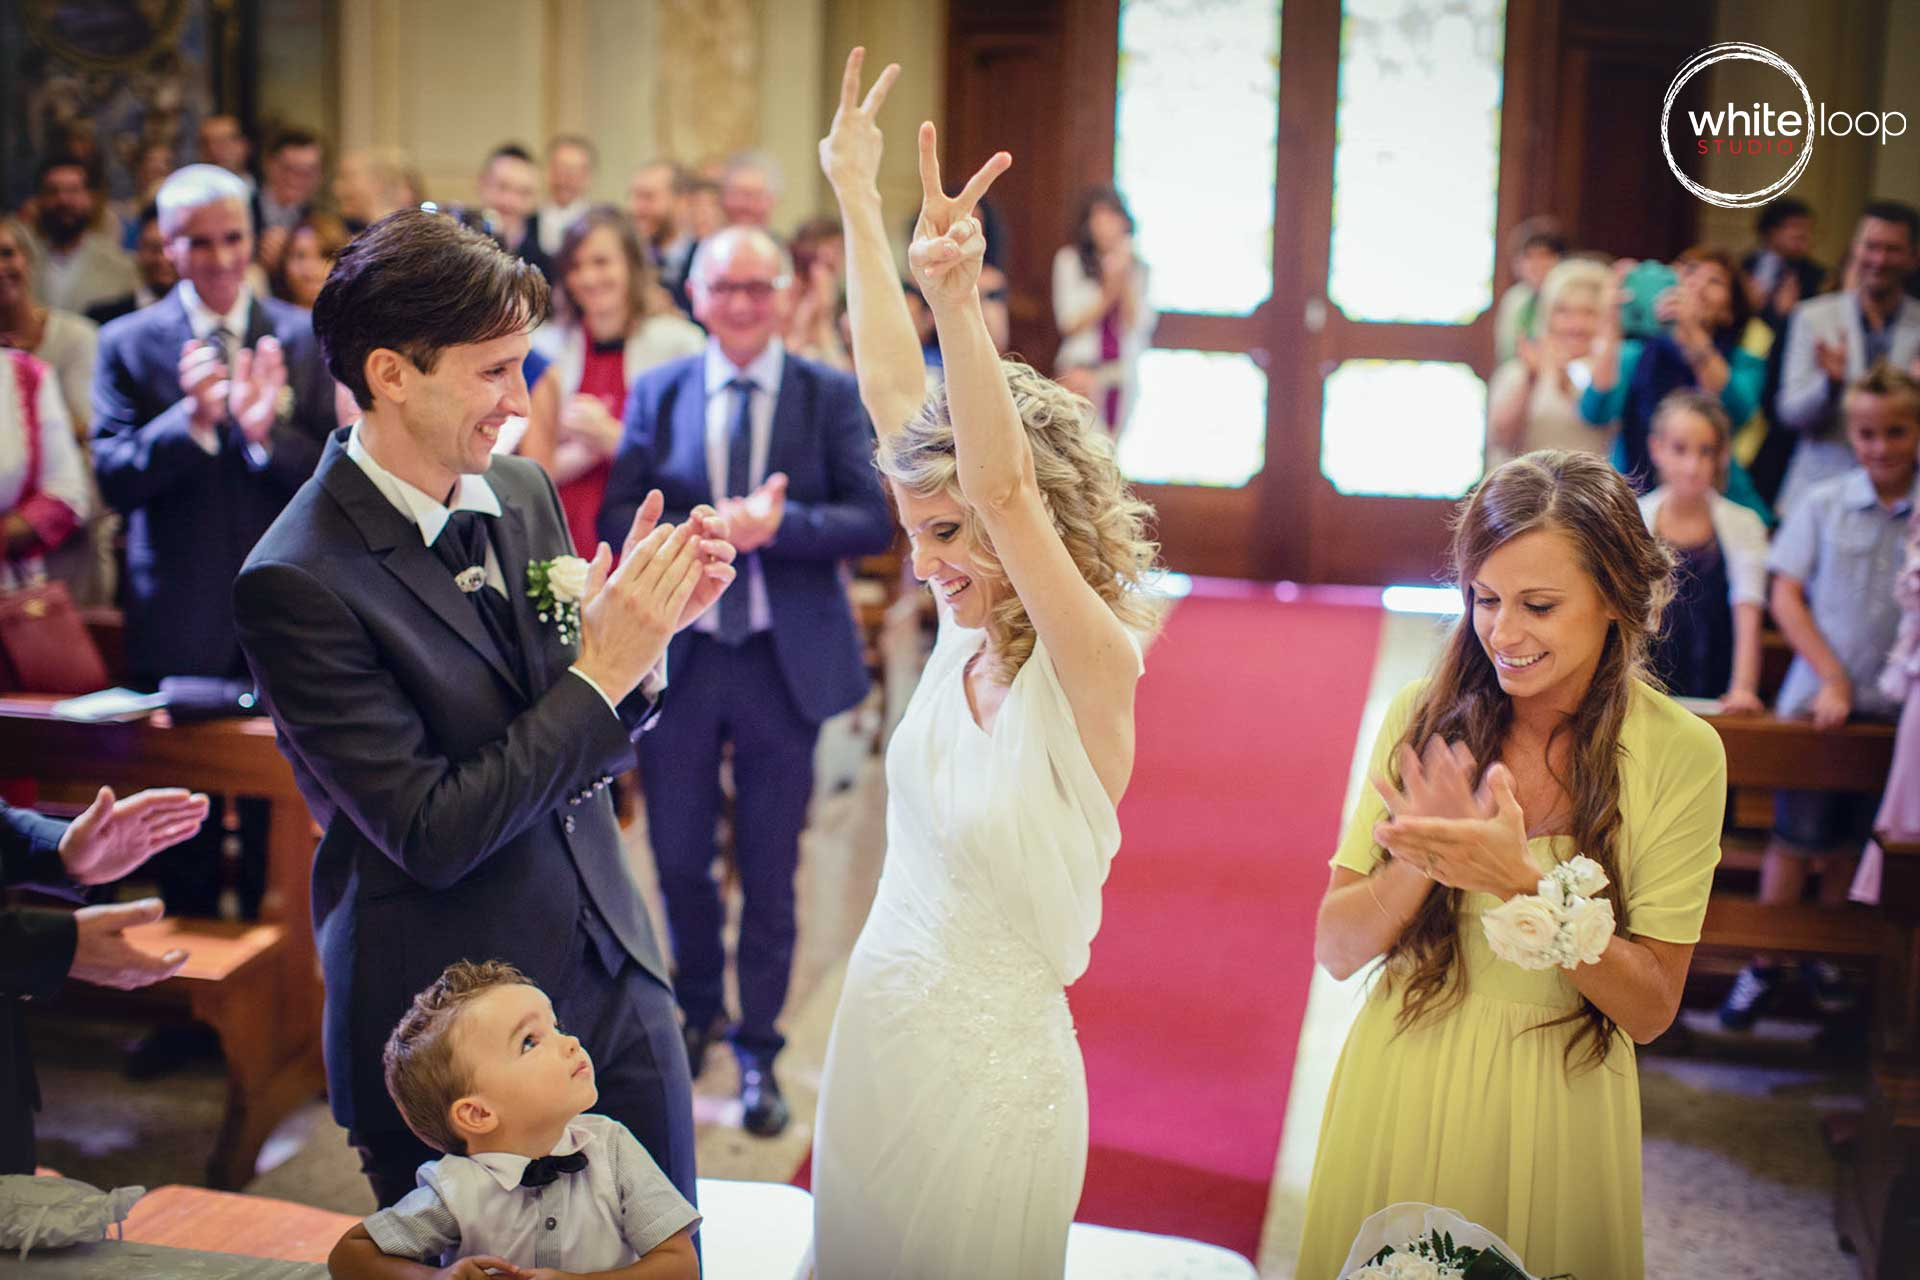 The couple celebrated in the church in religious commitment ceremony, while guests enjoy and applaud the happiness of them.